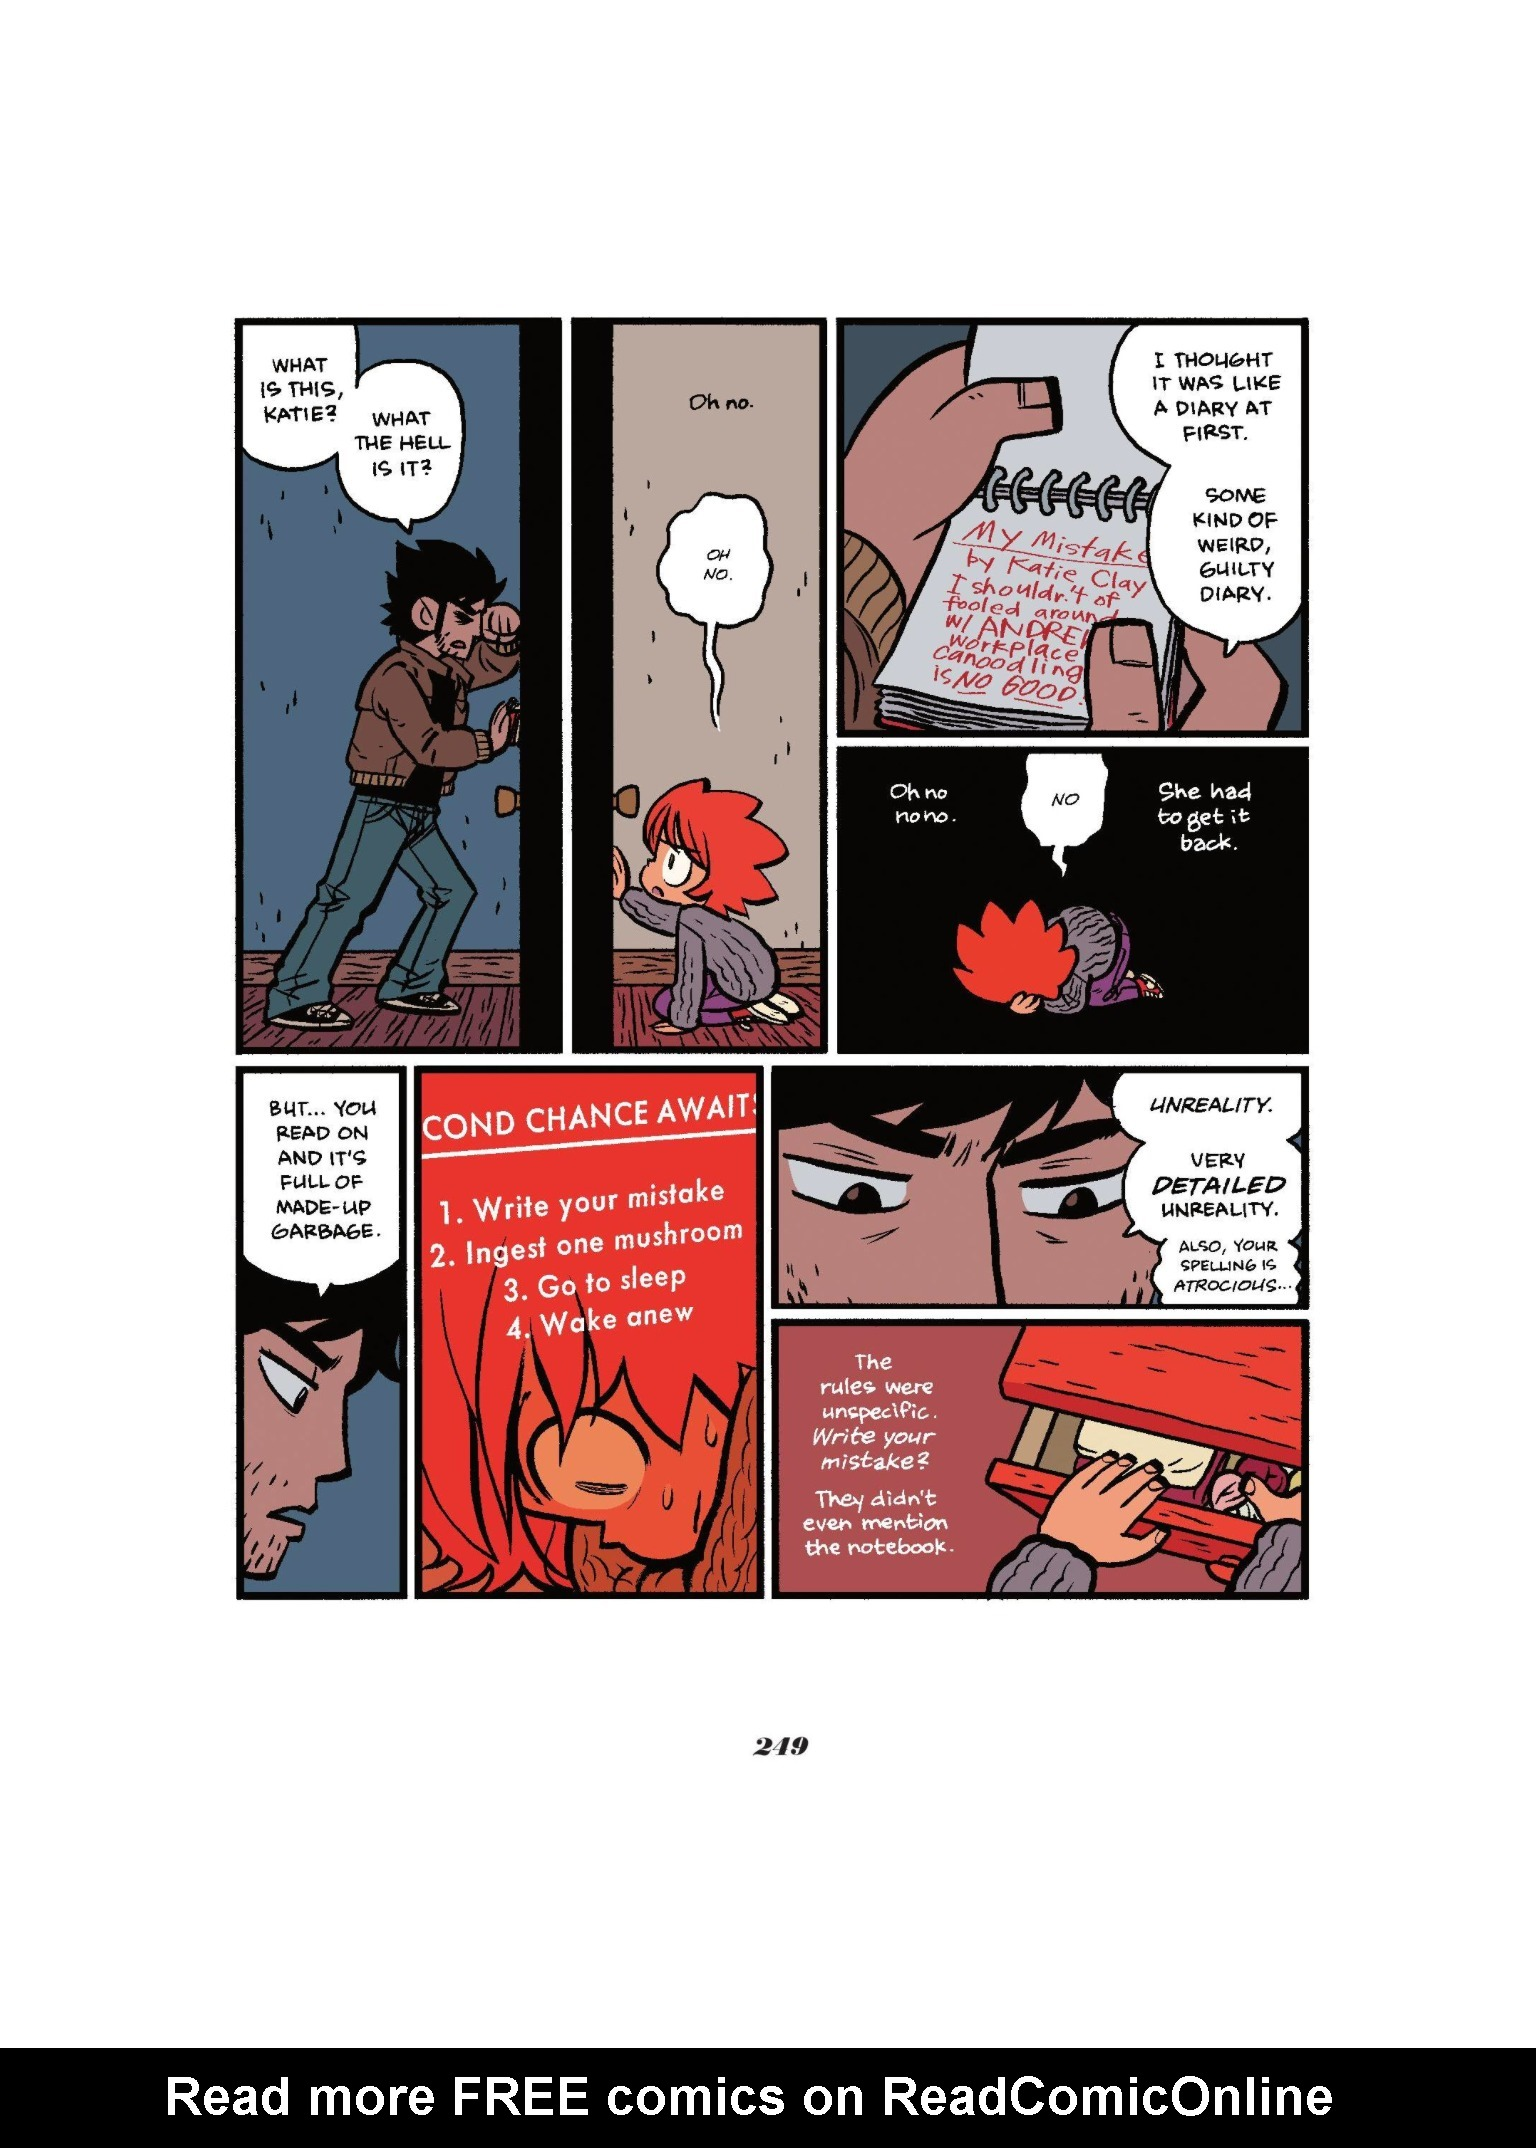 Read online Seconds comic -  Issue # Full - 249